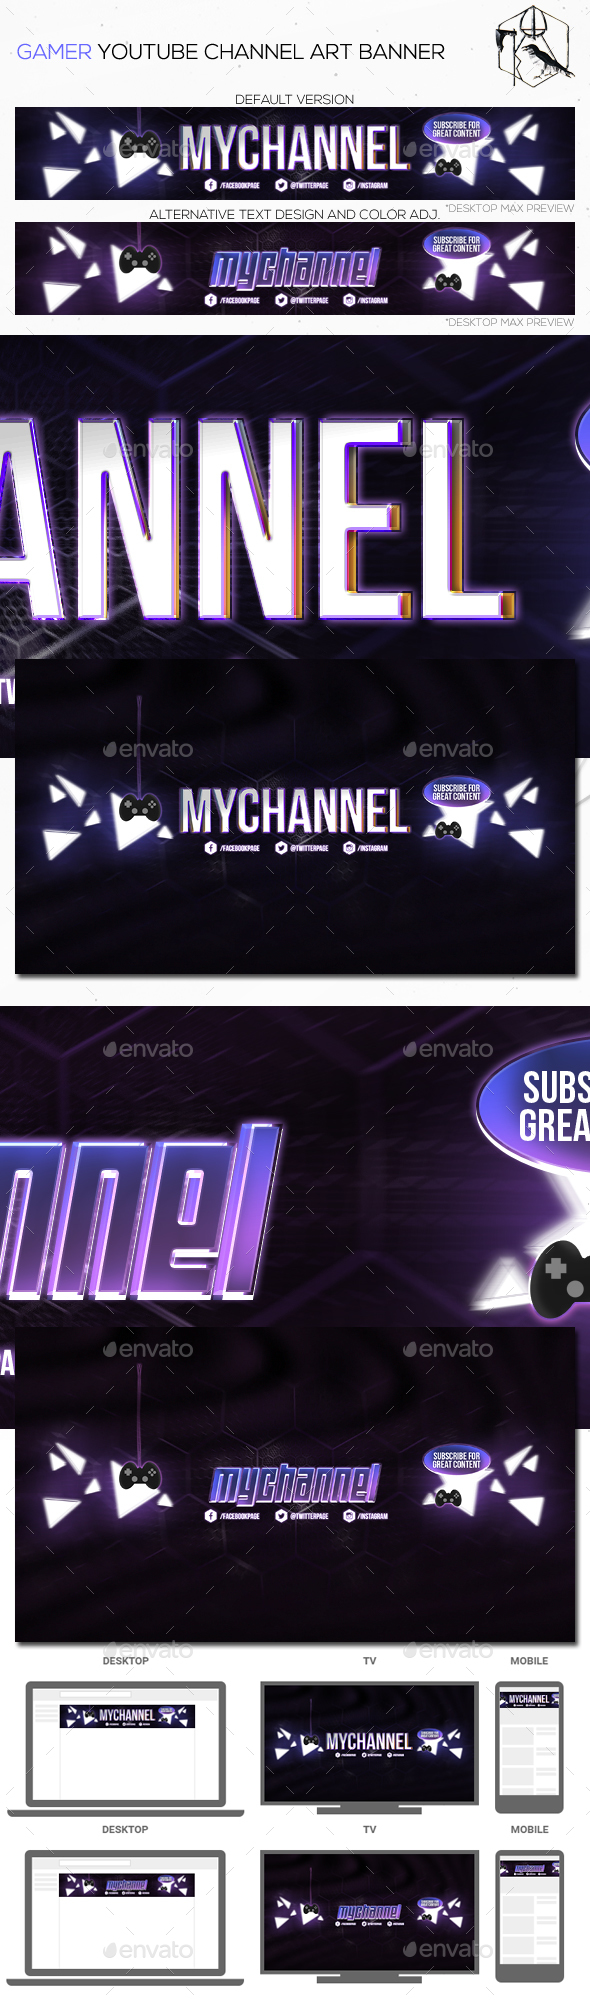 youtube channel art graphics designs templates